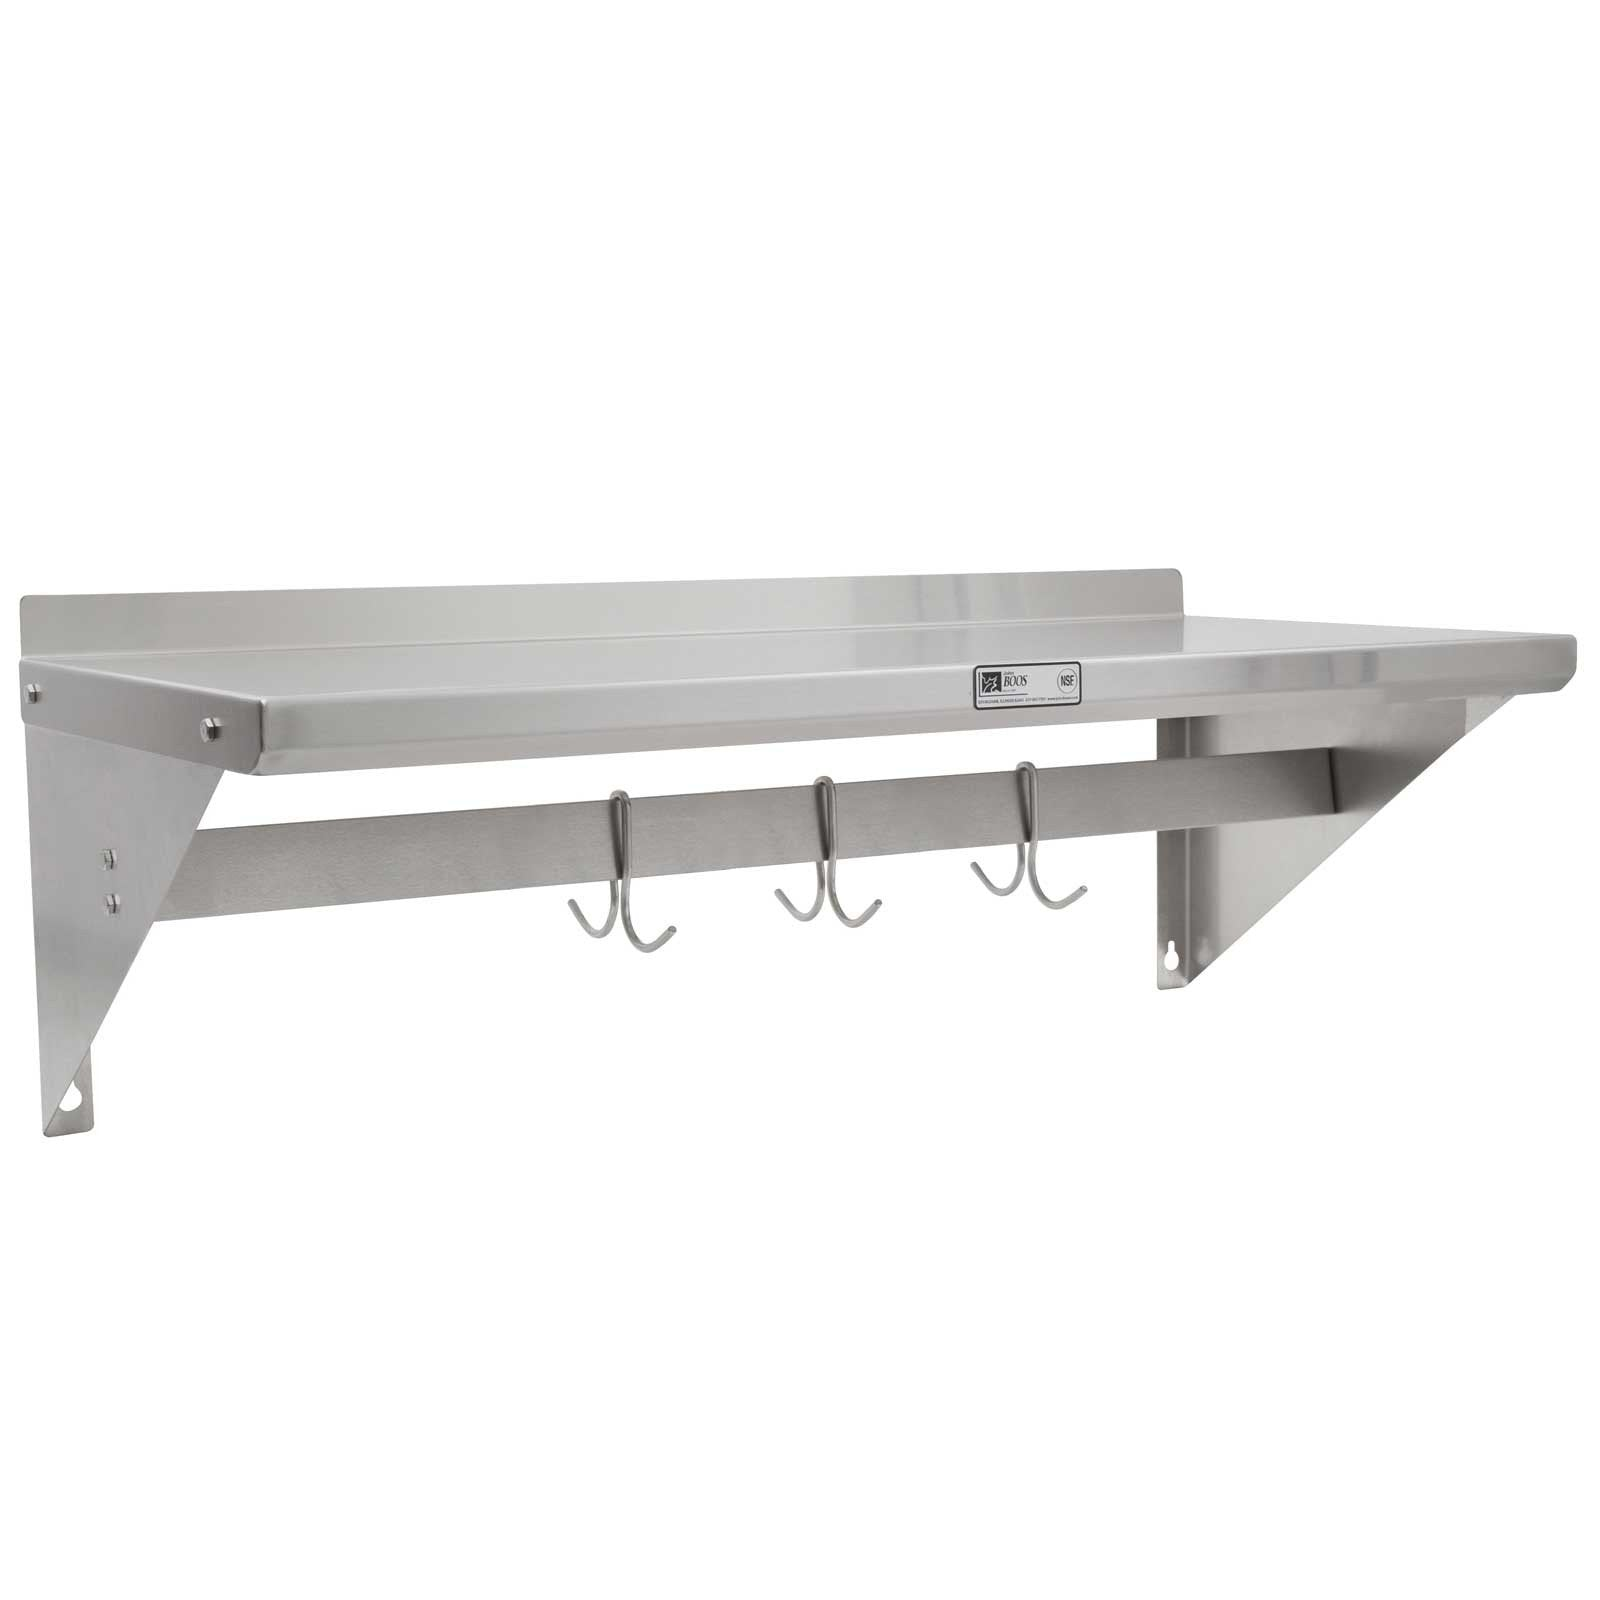 "John Boos BHS12120PR Wall Shelf - 1 1/2"" Riser - With Pot Rack - 120"" X 12"""